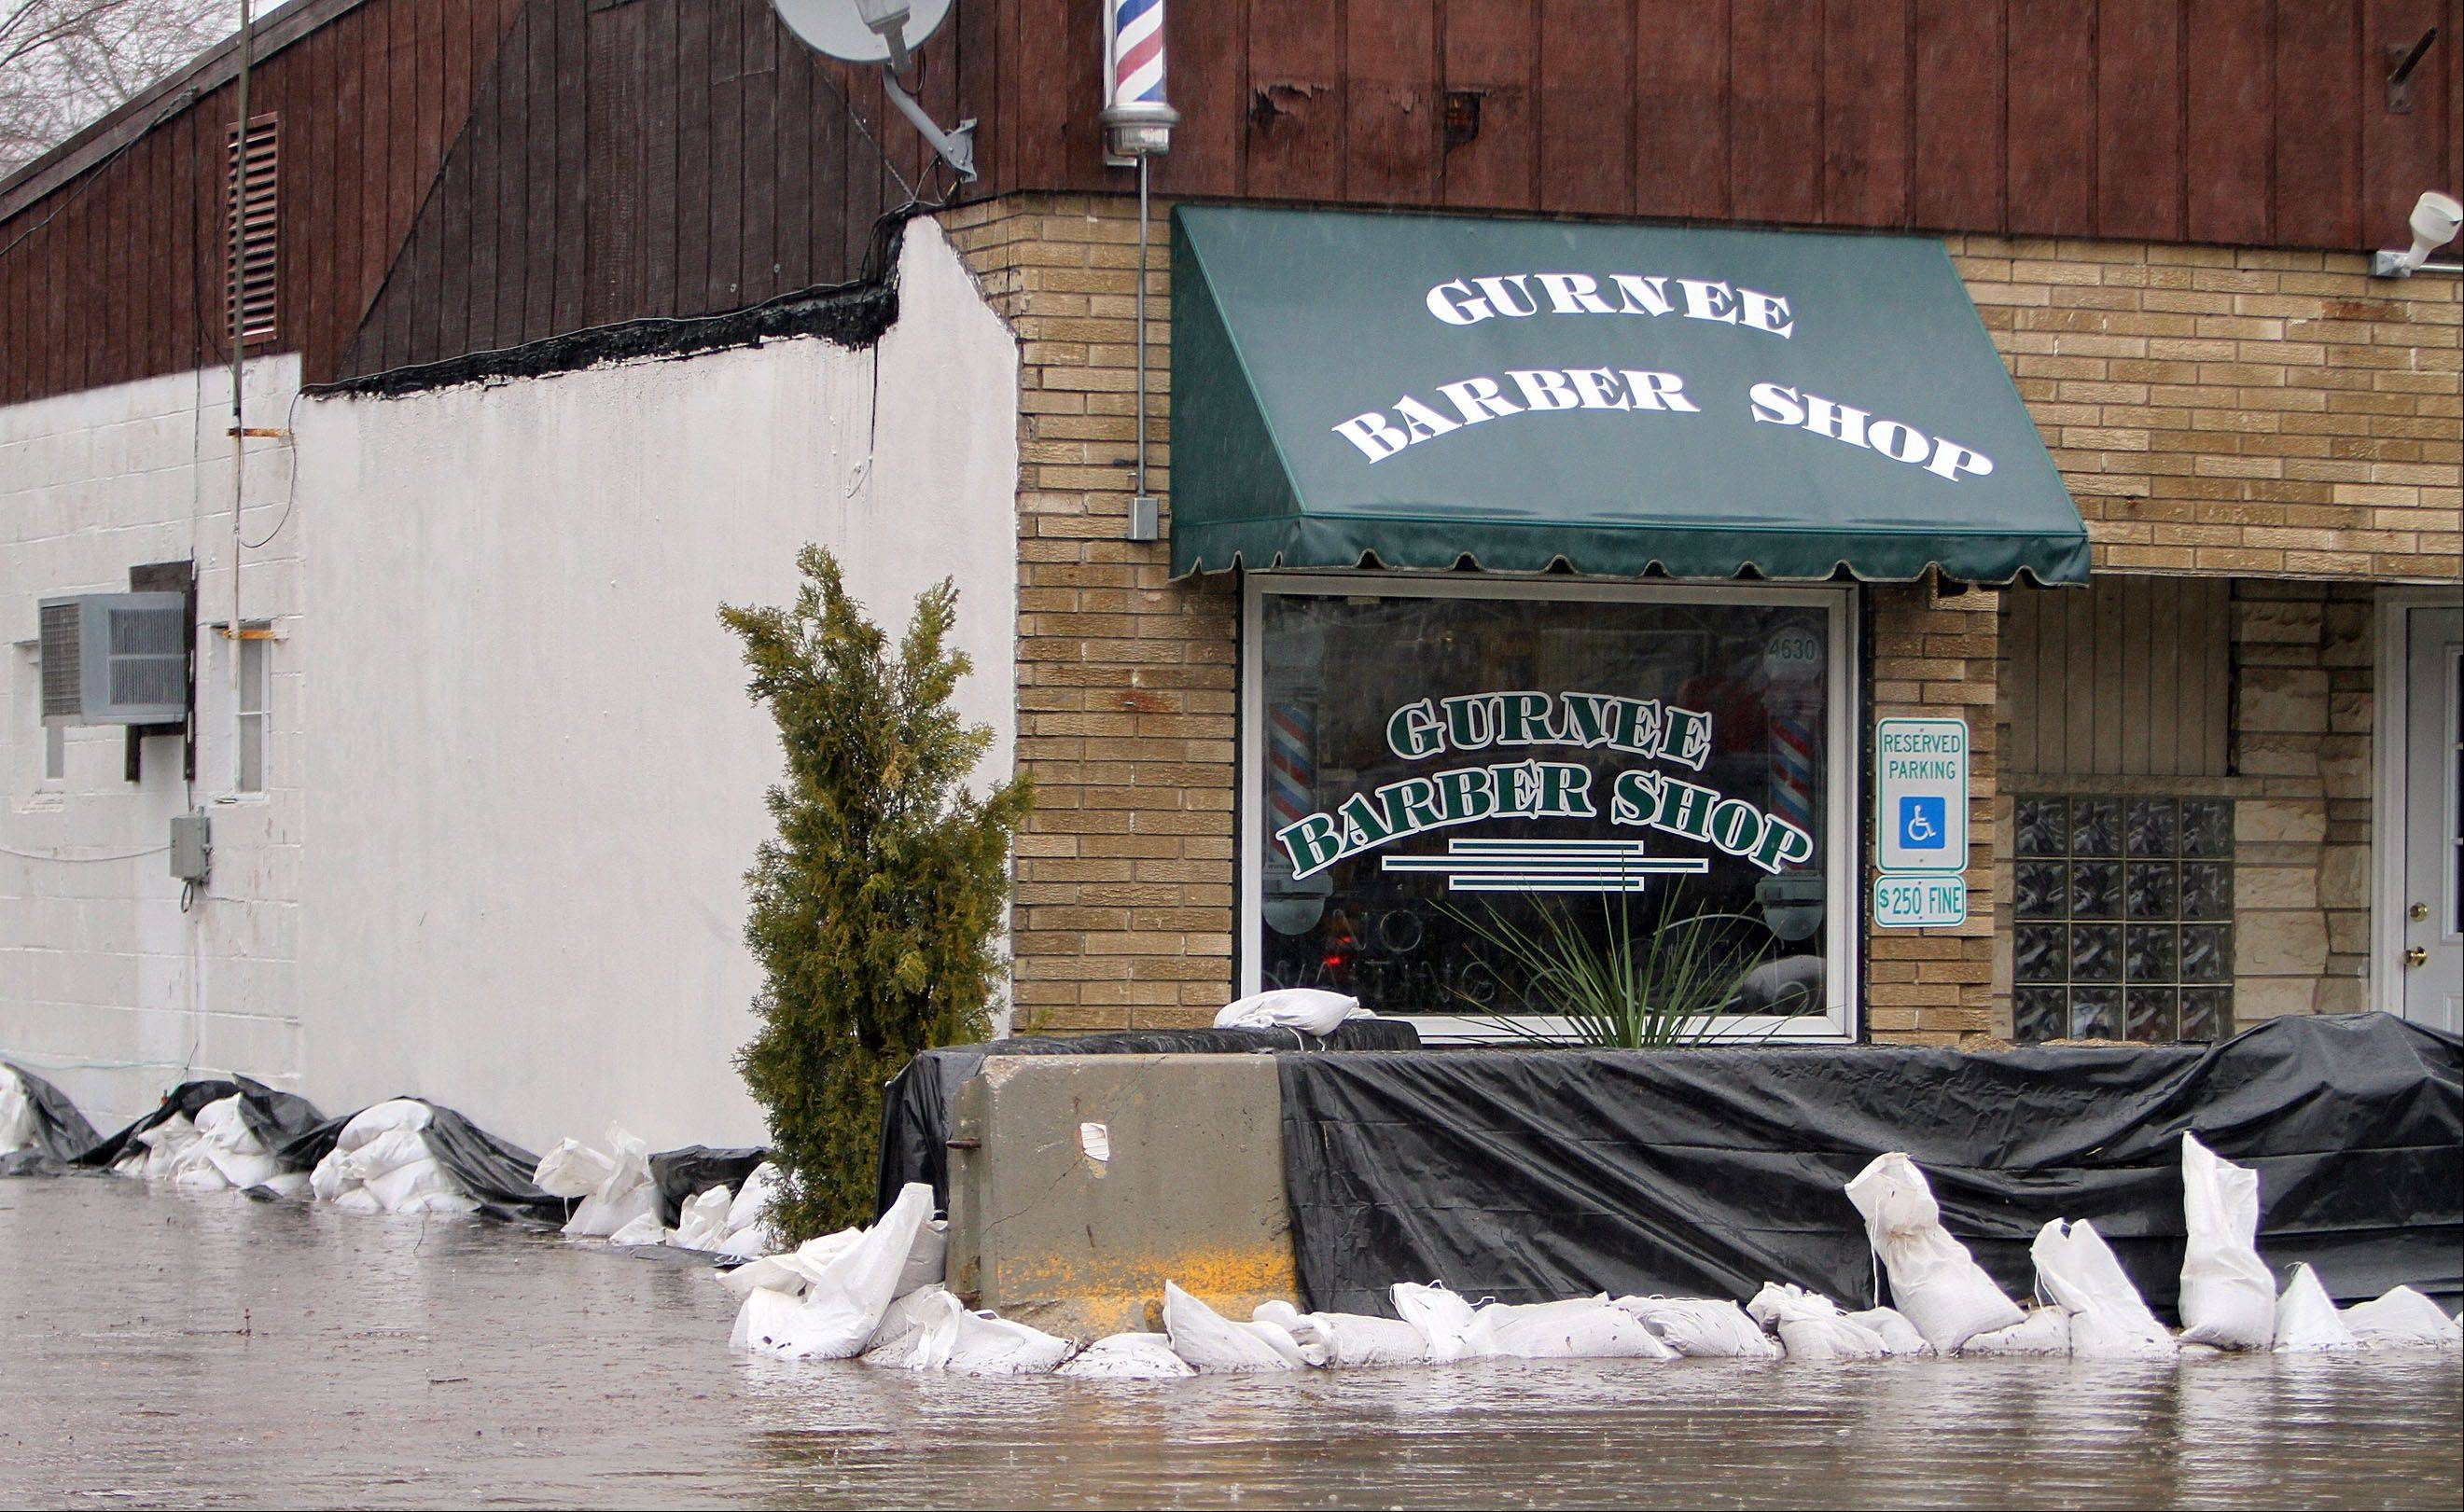 The Gurnee Barber Shop Old Grand Avenue prepares for flooding in Gurnee Thursday morning.